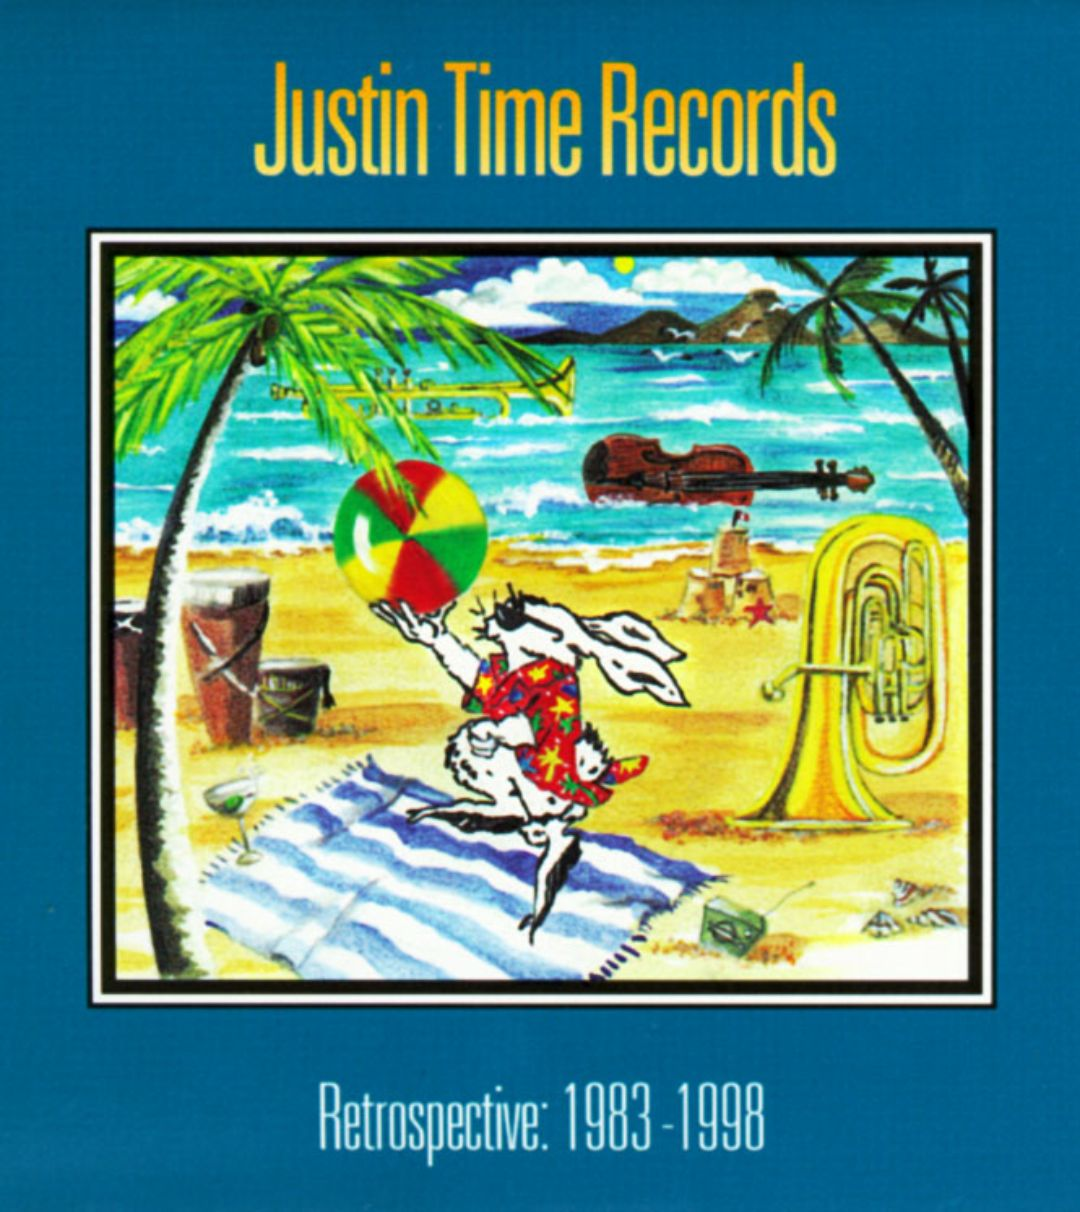 Justin Time Records Retrospective (1983-1998)